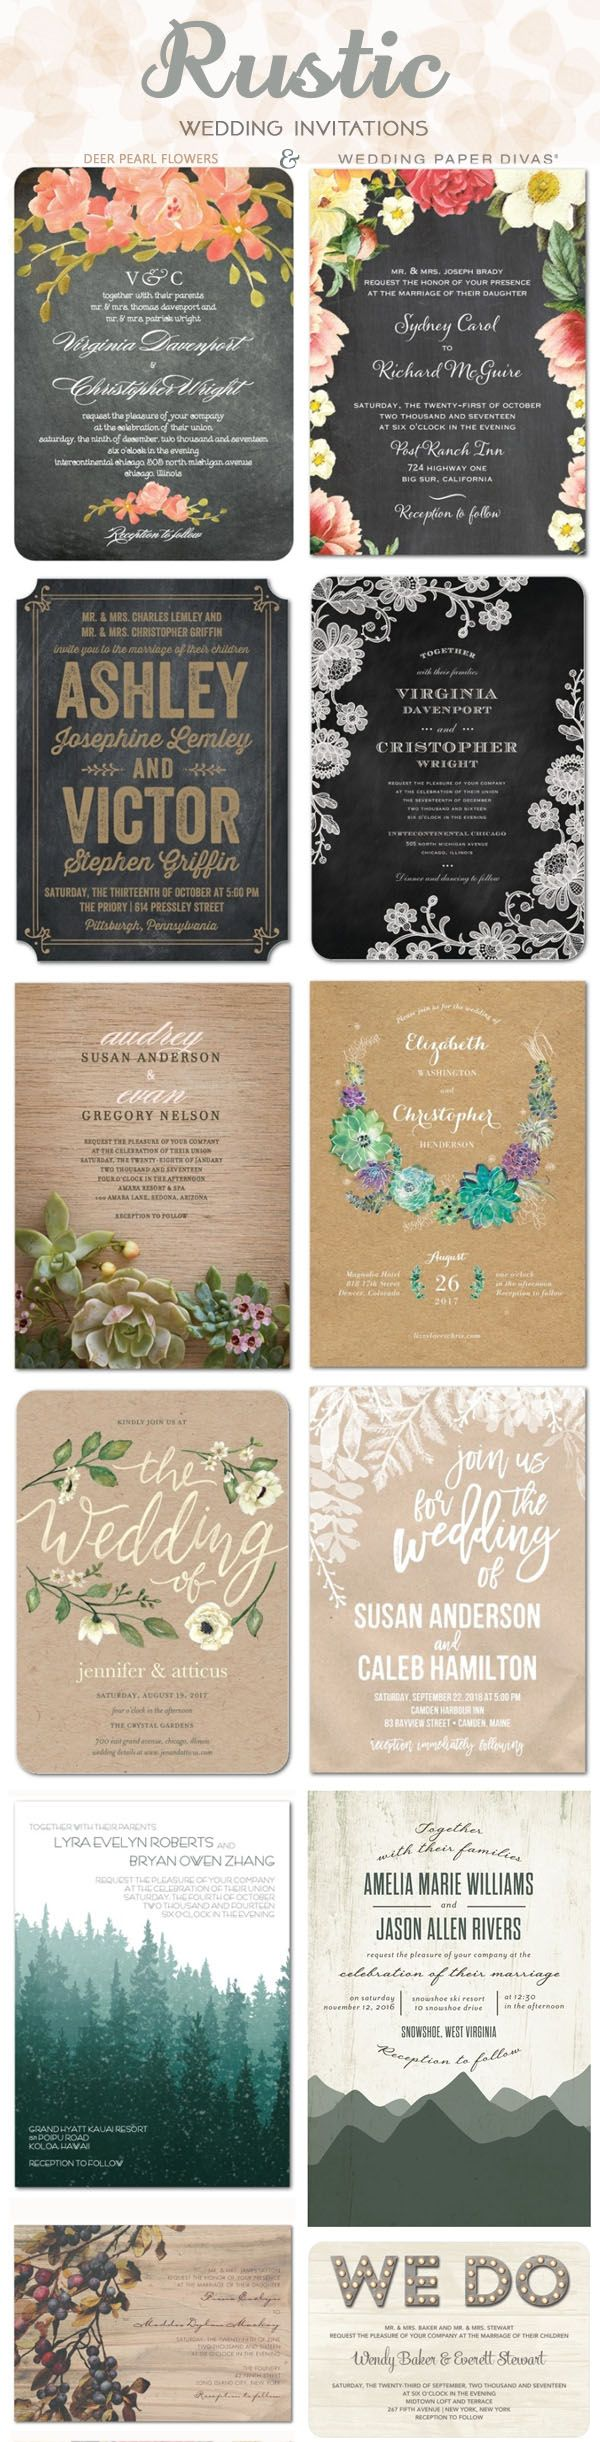 second wedding invitations wording%0A Trending for       greenery wedding invitations from Elli com   Wedding  Bells   Pinterest   Greenery  Weddings and Wedding